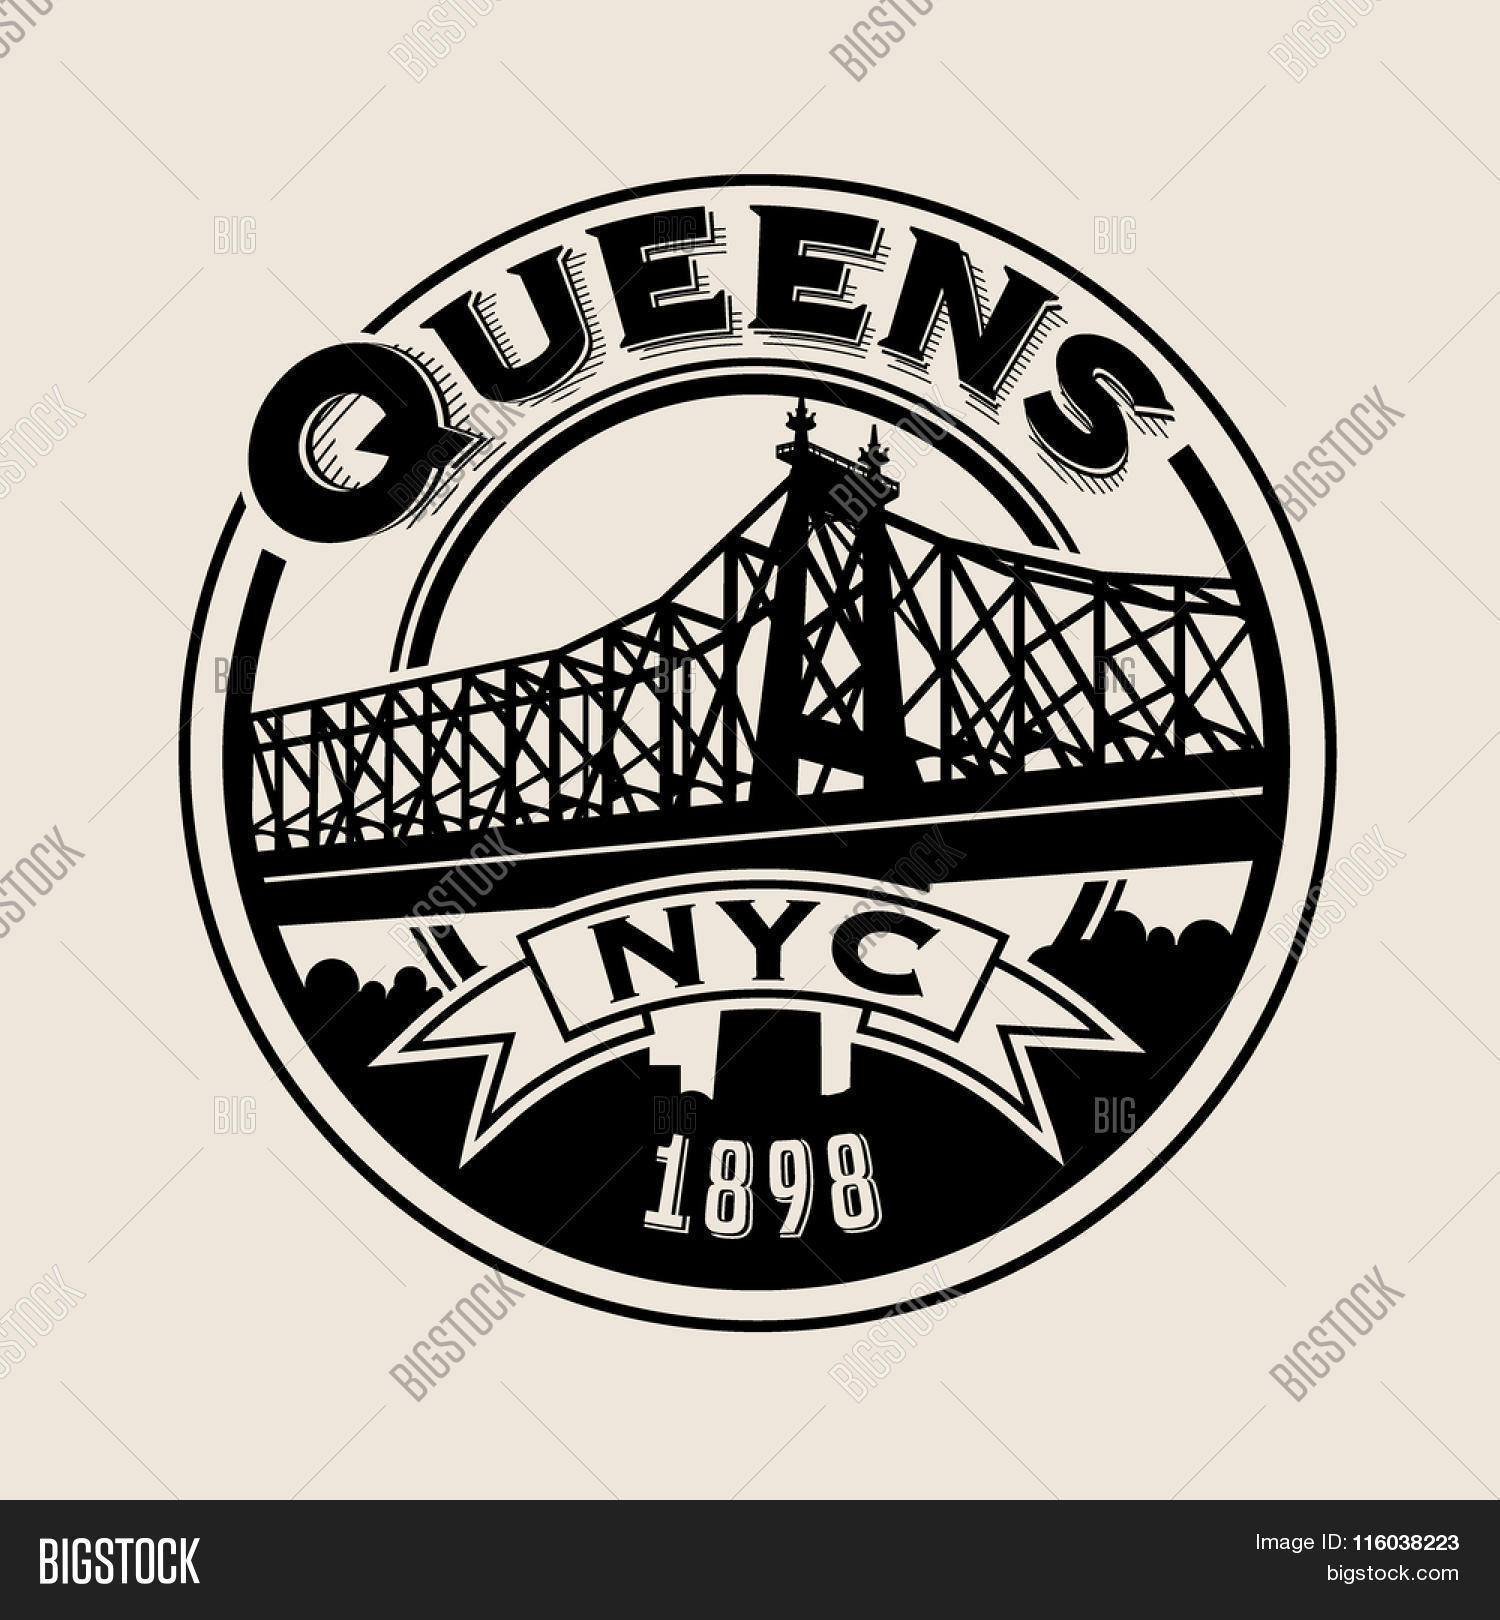 T shirt design queens ny - Vintage T Shirt Sticker Emblem Design Queens New York City And Queensboro Bridge